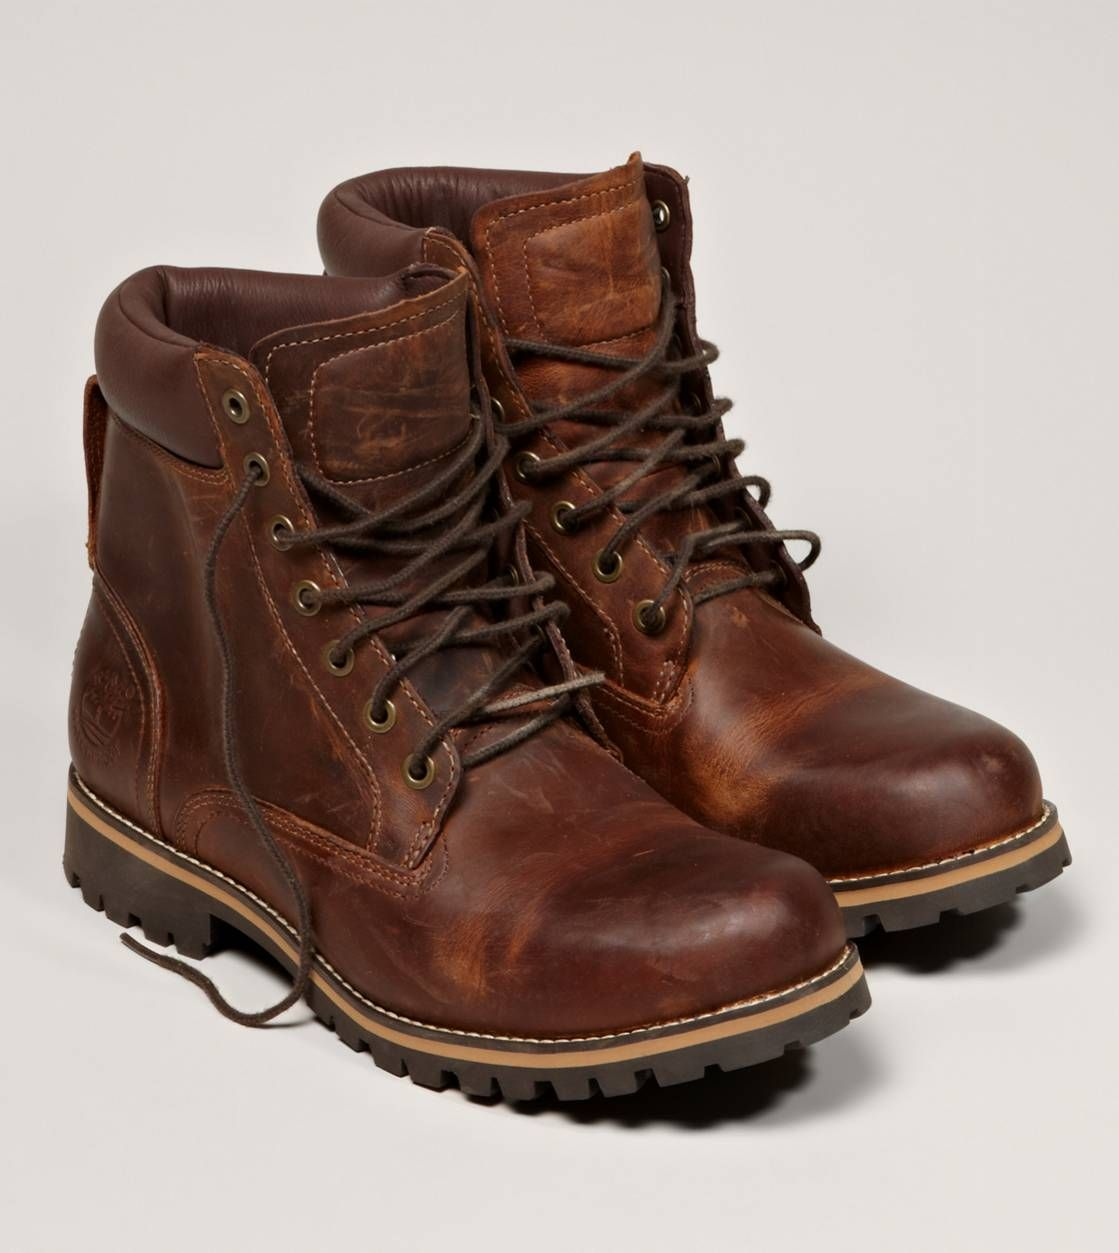 Timberland Earthkeepers Rugged 6 In Waterproof Plain Toe Boot George F Senior Creative Director Need Pinterest